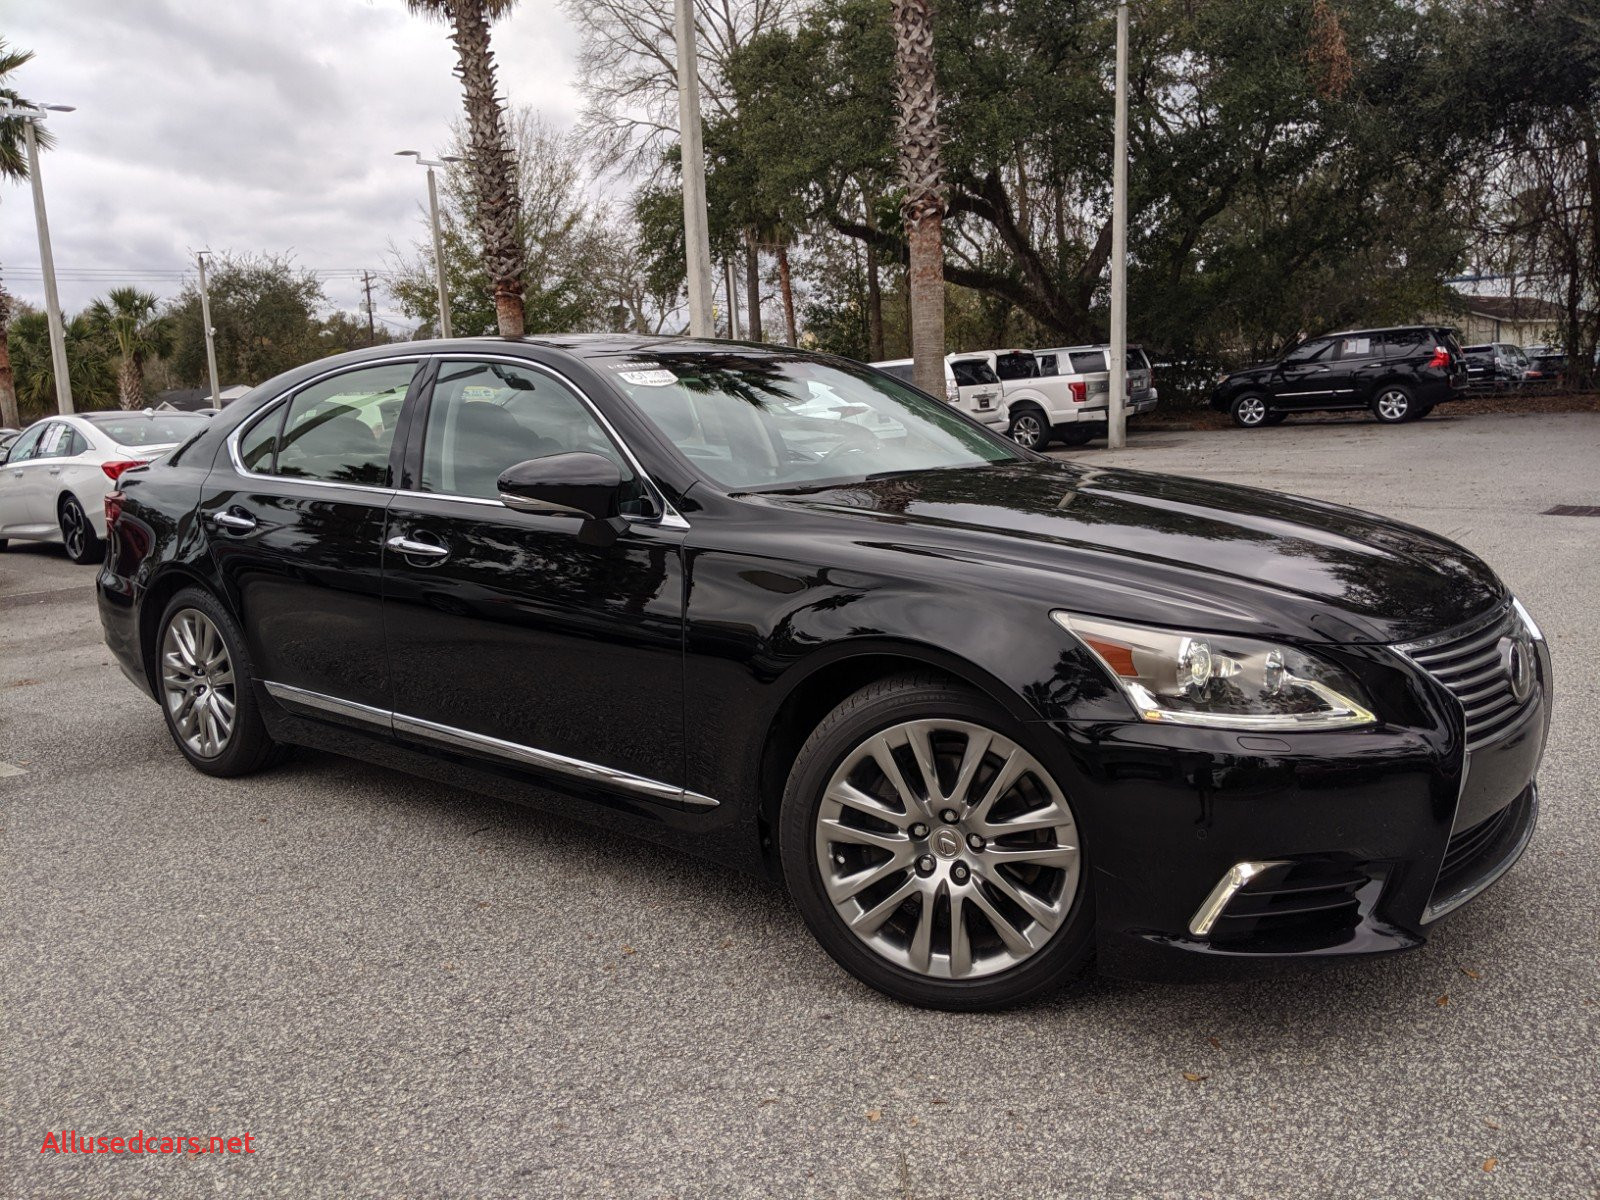 Lexus Ls 460 for Sale Fresh Pre Owned 2014 Lexus Ls 460 4dr Sdn Rwd